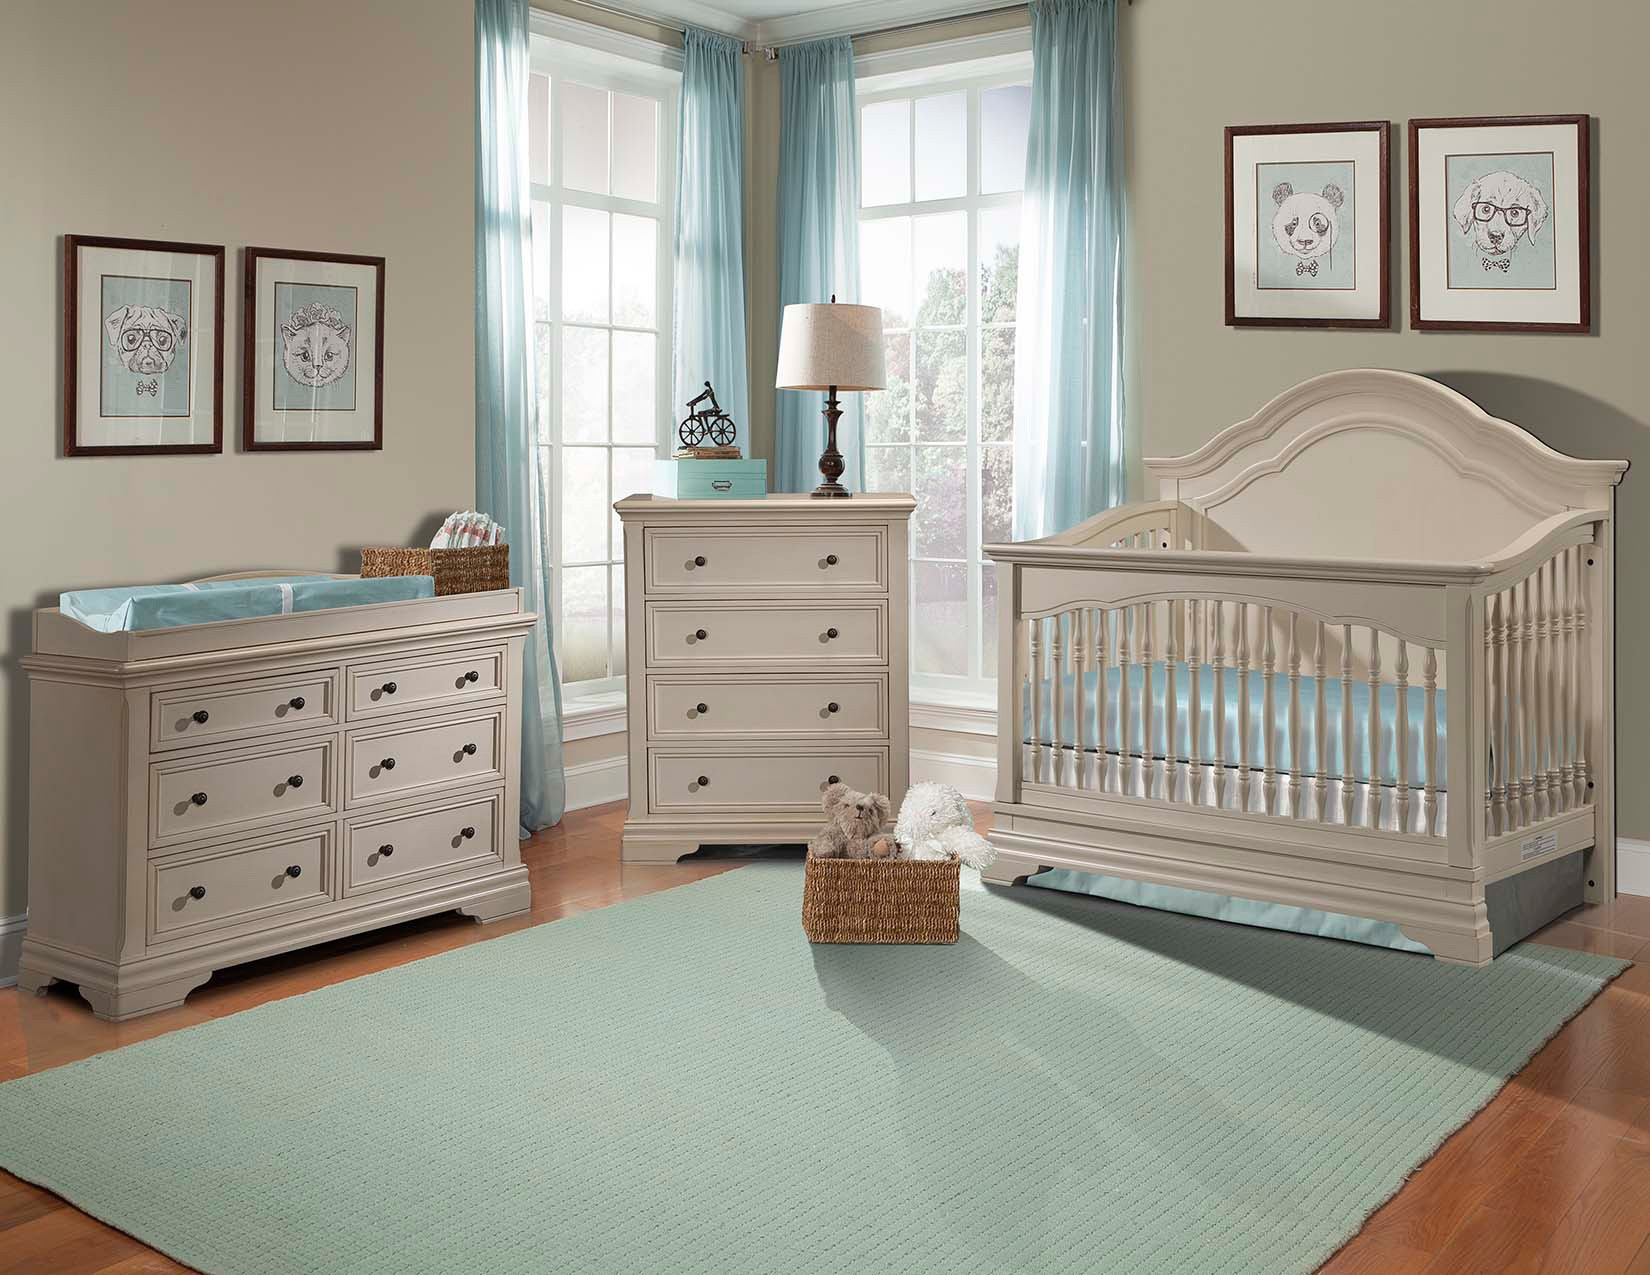 Cool Stella Baby and Child Athena 3 Piece Nursery Set in Belgium Cream baby nursery furniture sets